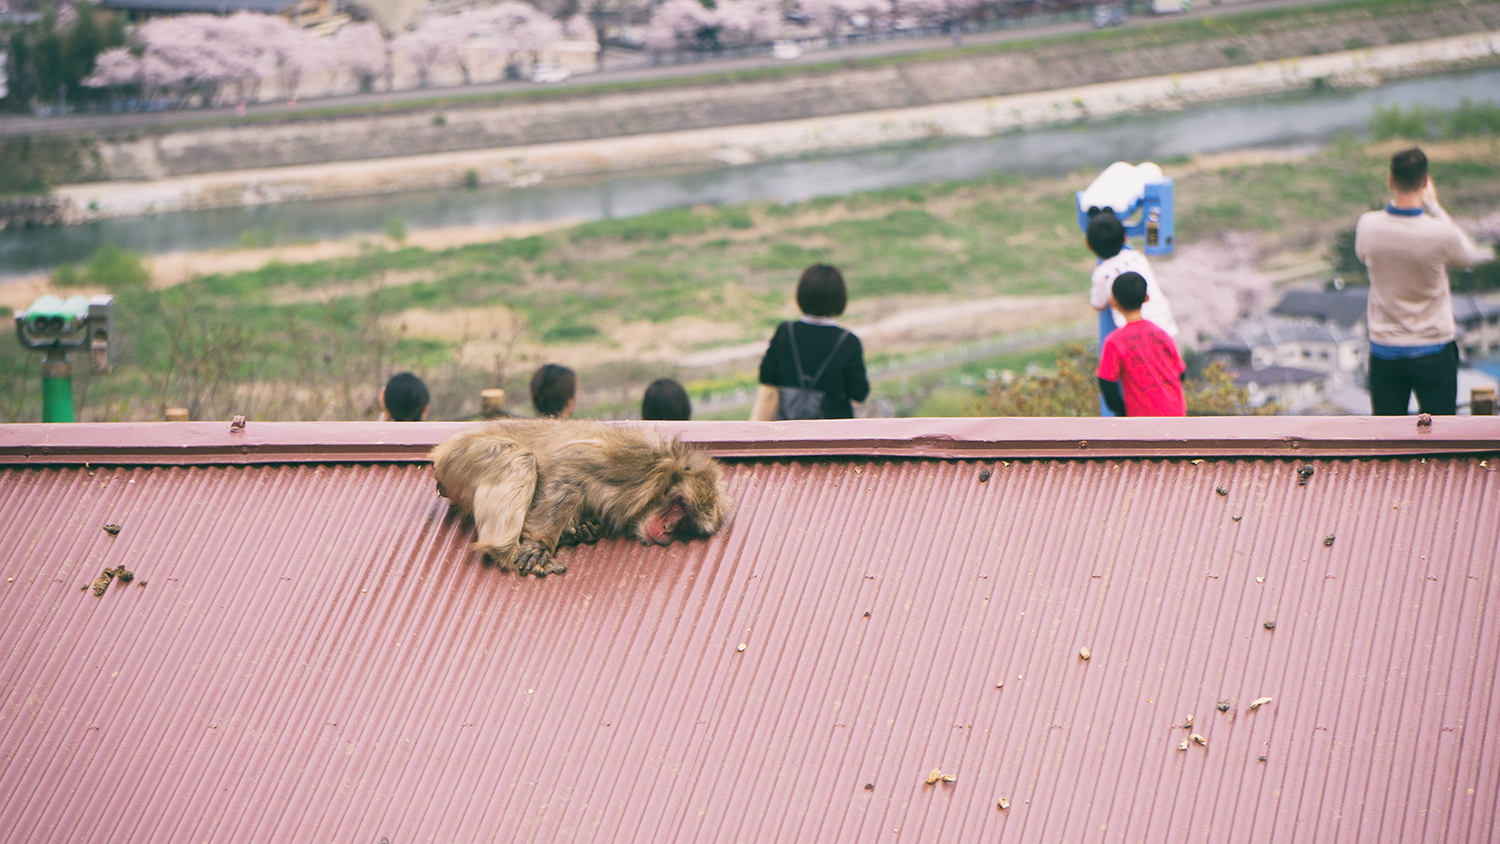 Monkey on the roof!